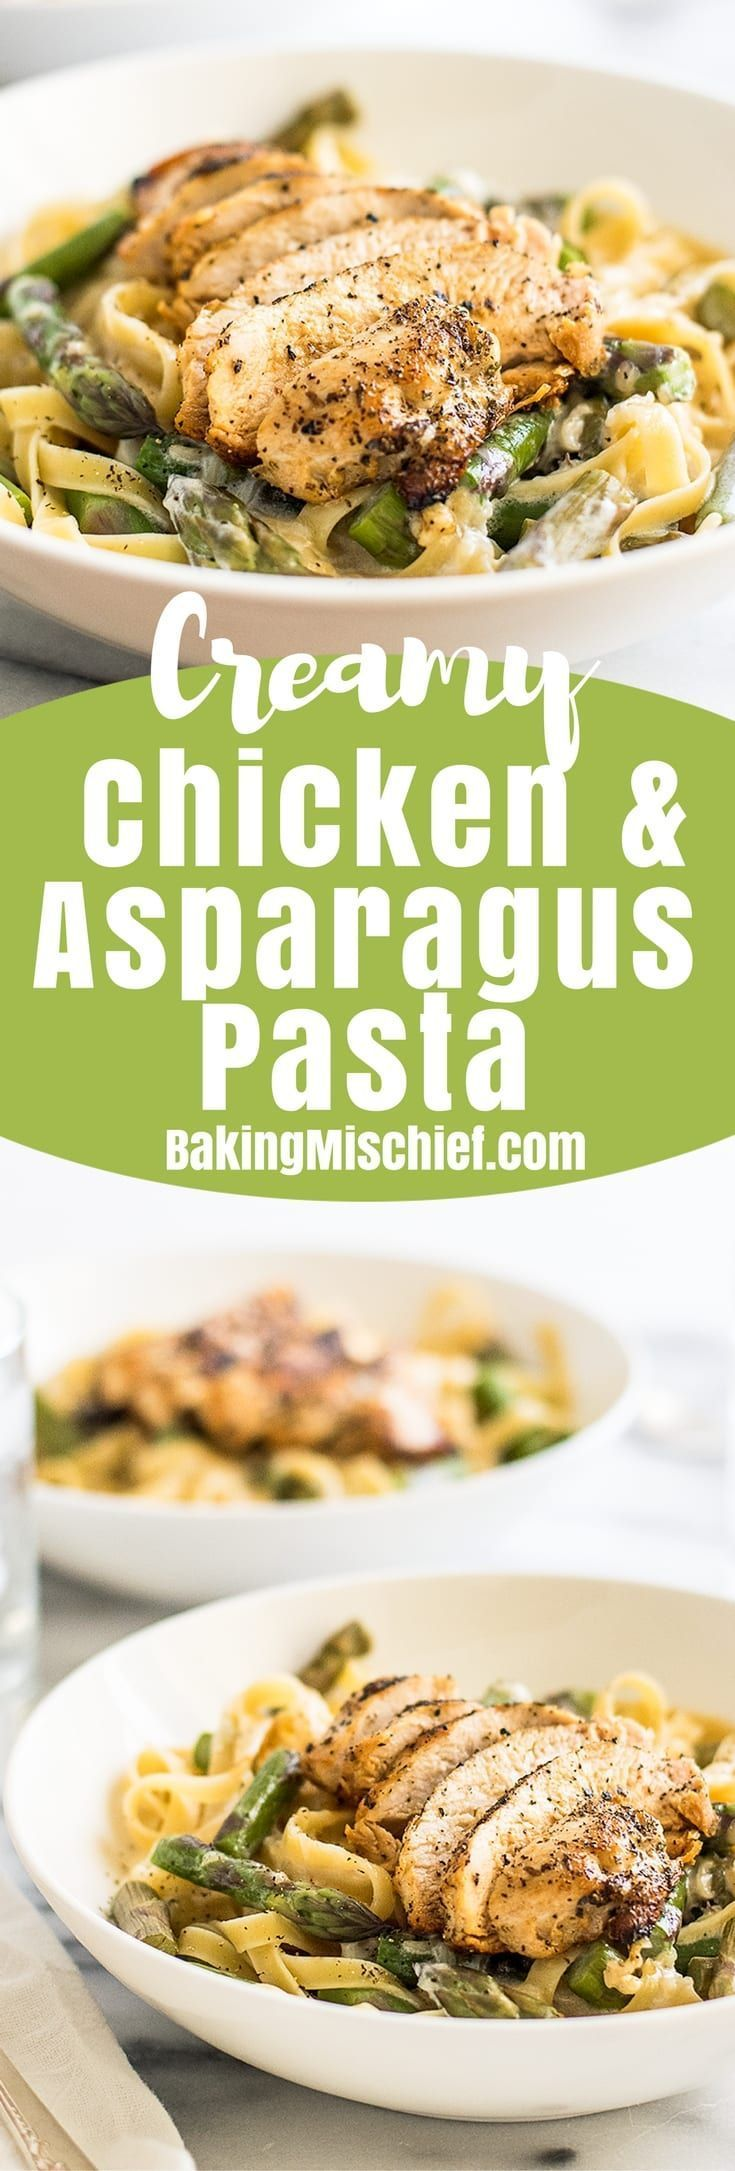 This easy Creamy Chicken and Asparagus Pasta is quick and simple to make and perfect for nights when you need a cheesy pasta fix! (healthy pasta recipes for two)